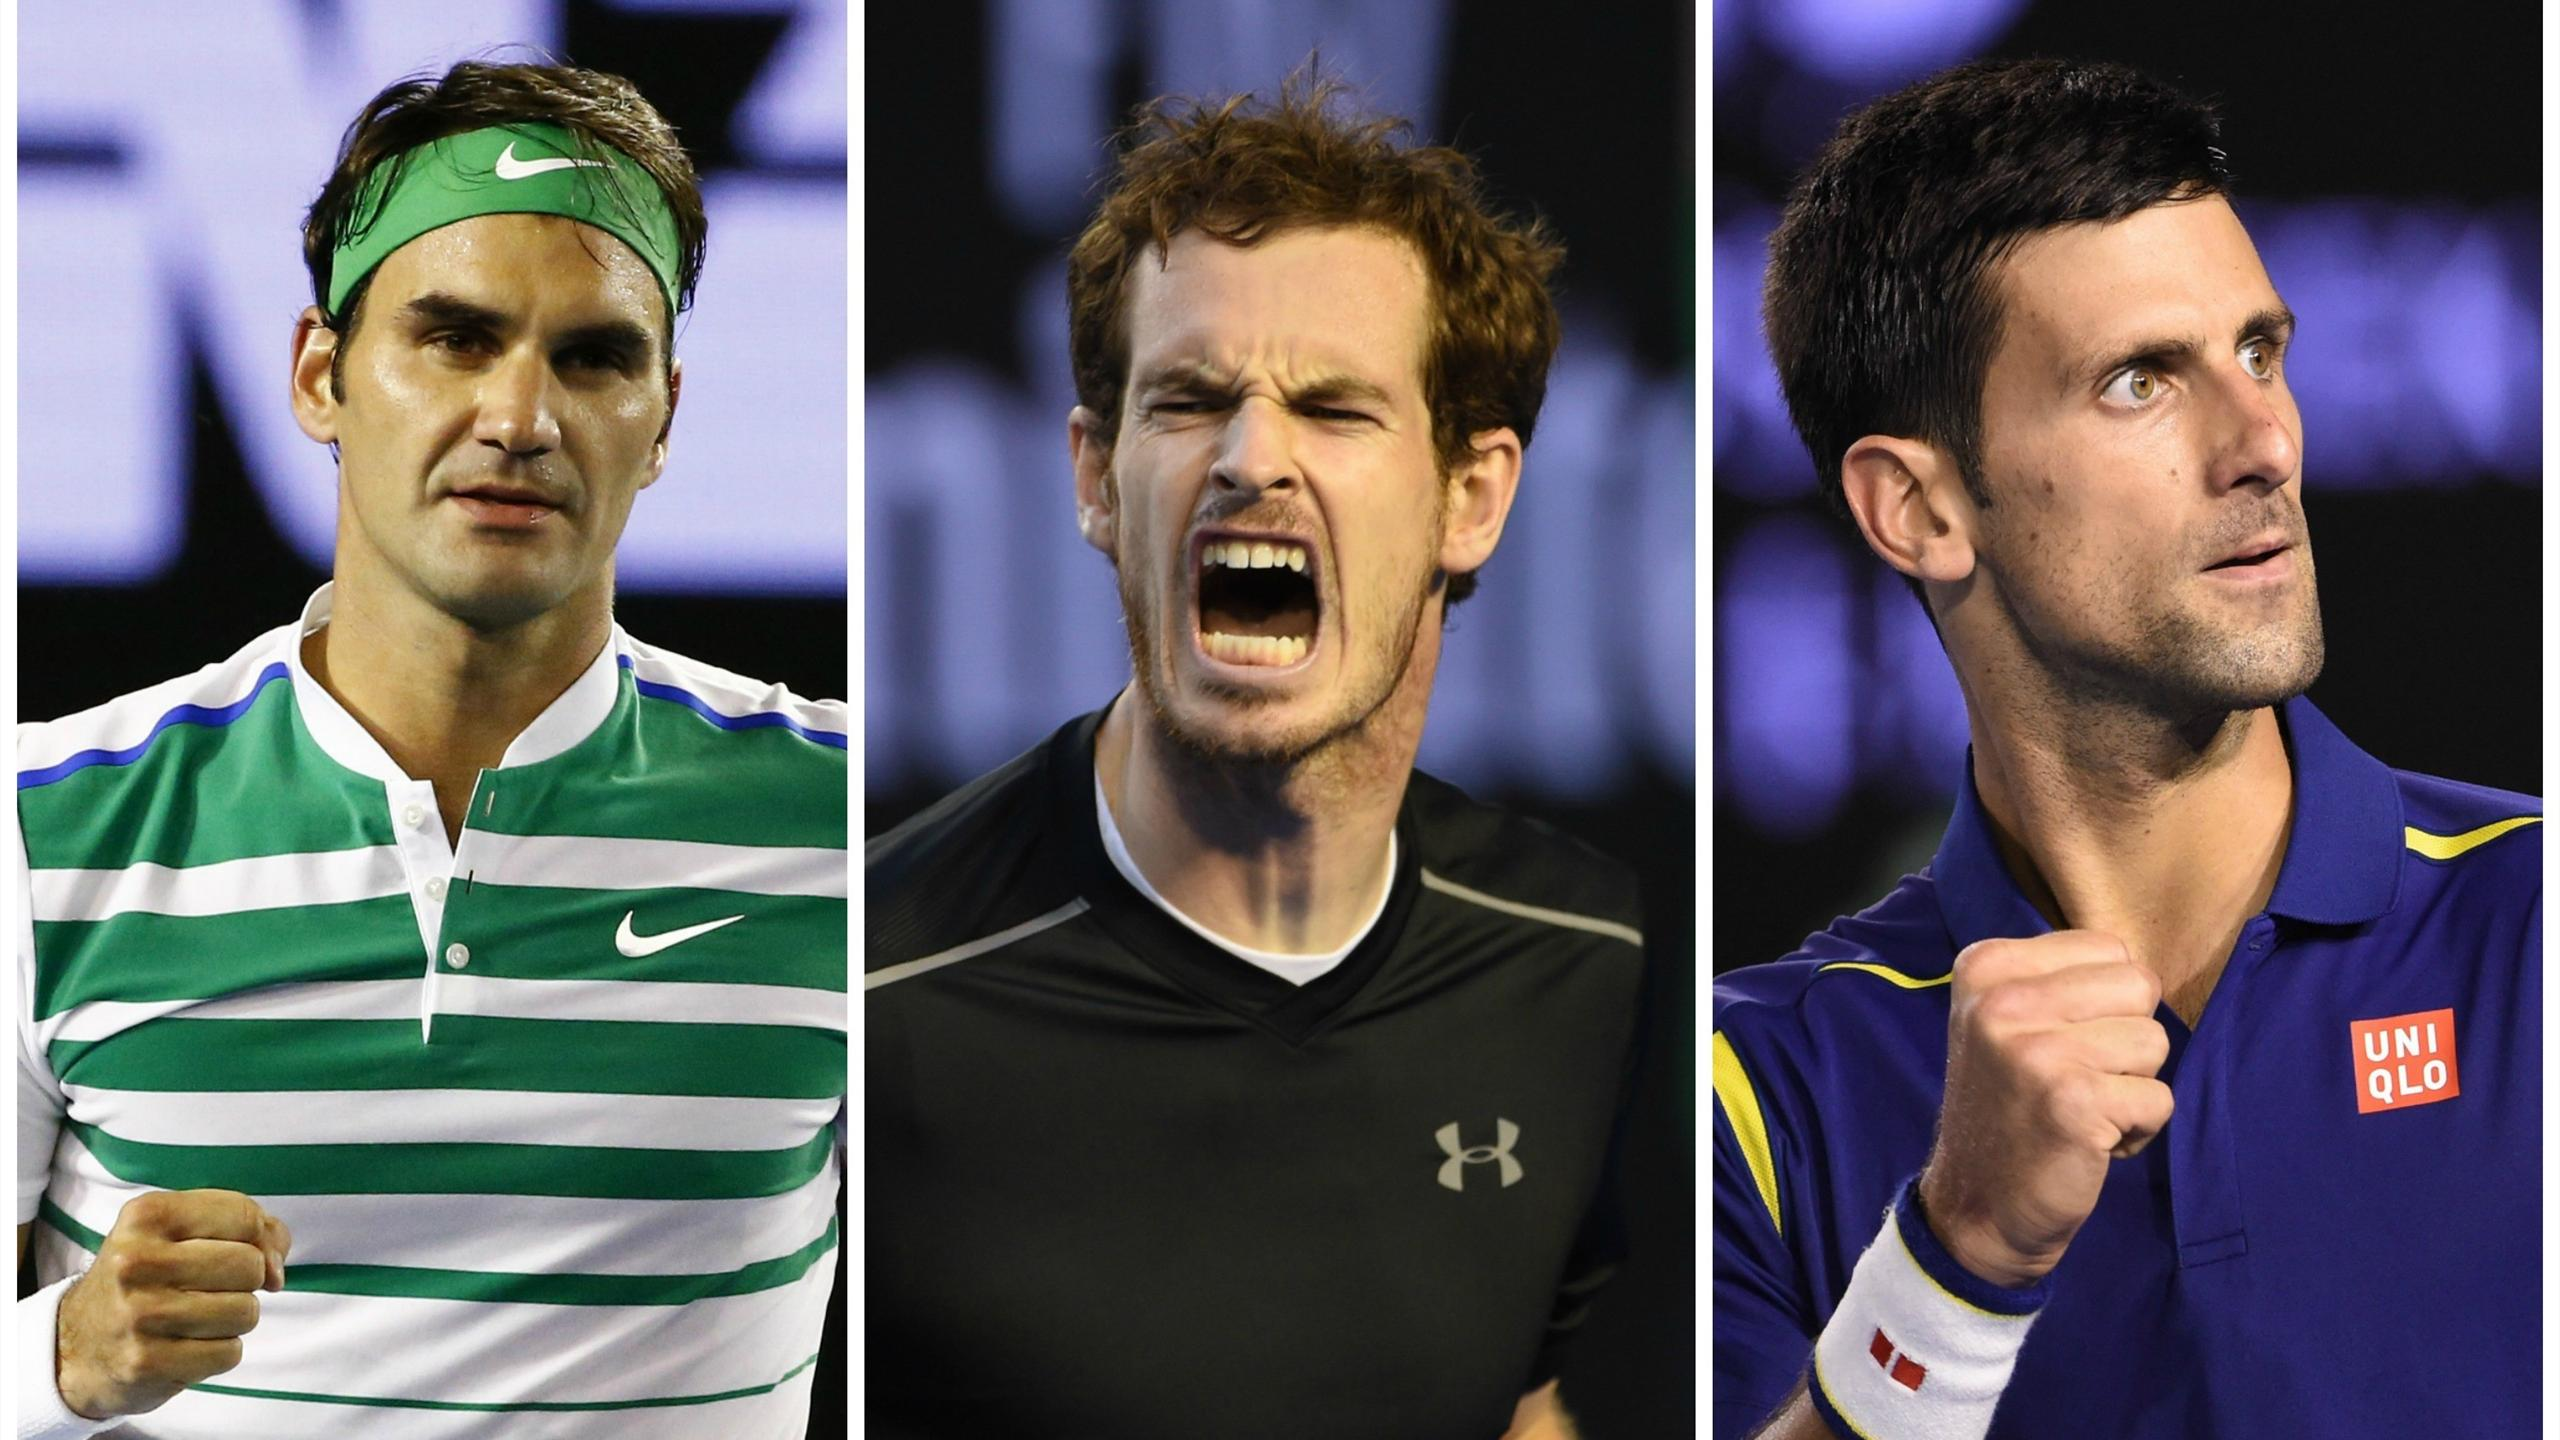 Roger Federer, Andy Murray and Novak Djokovic